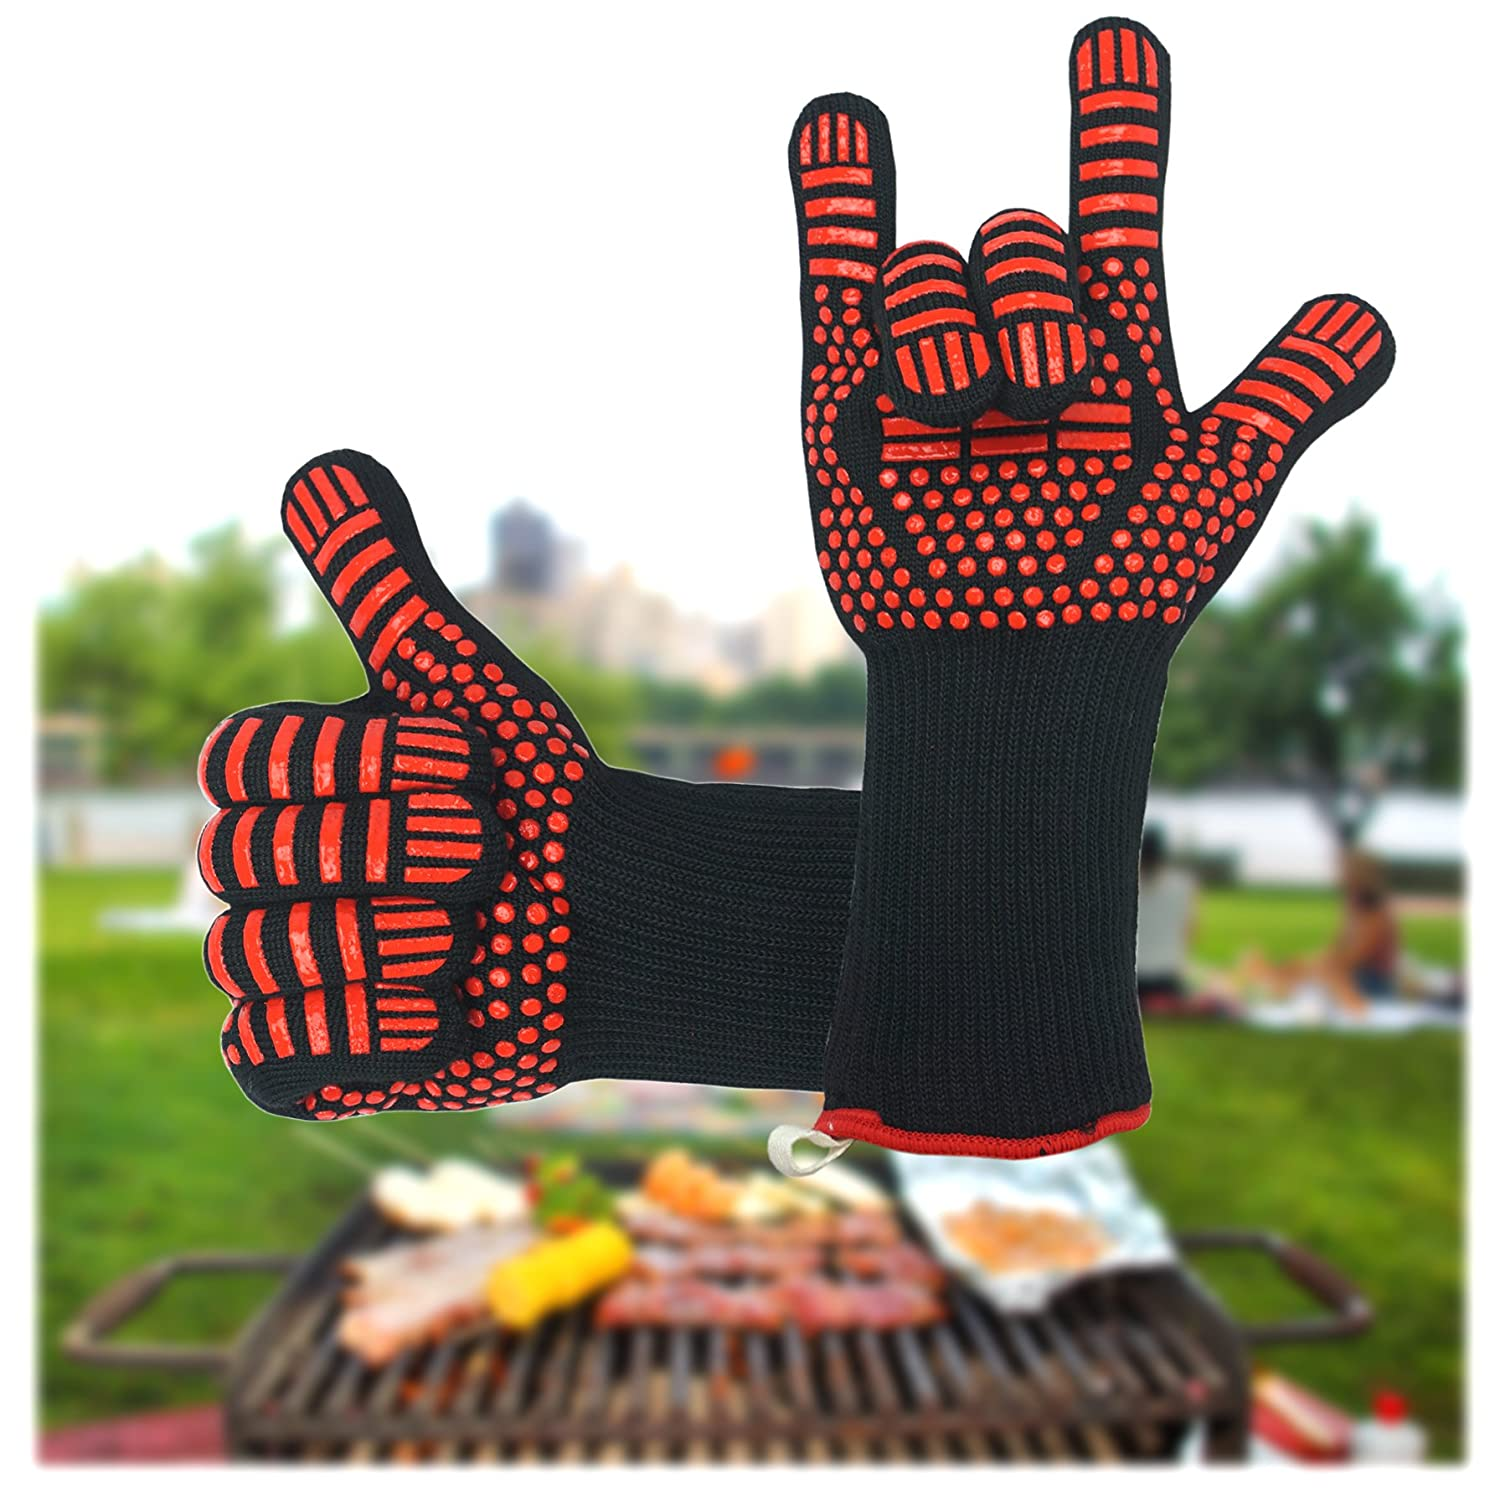 BBQ Gloves Heat Resistant, Oven Gloves with Fingers, Heave Duty Silicone Oven Gloves for Barbecue, Cooking, Baking, Grilling, BBQ D.E. E-Commerce Ltd.